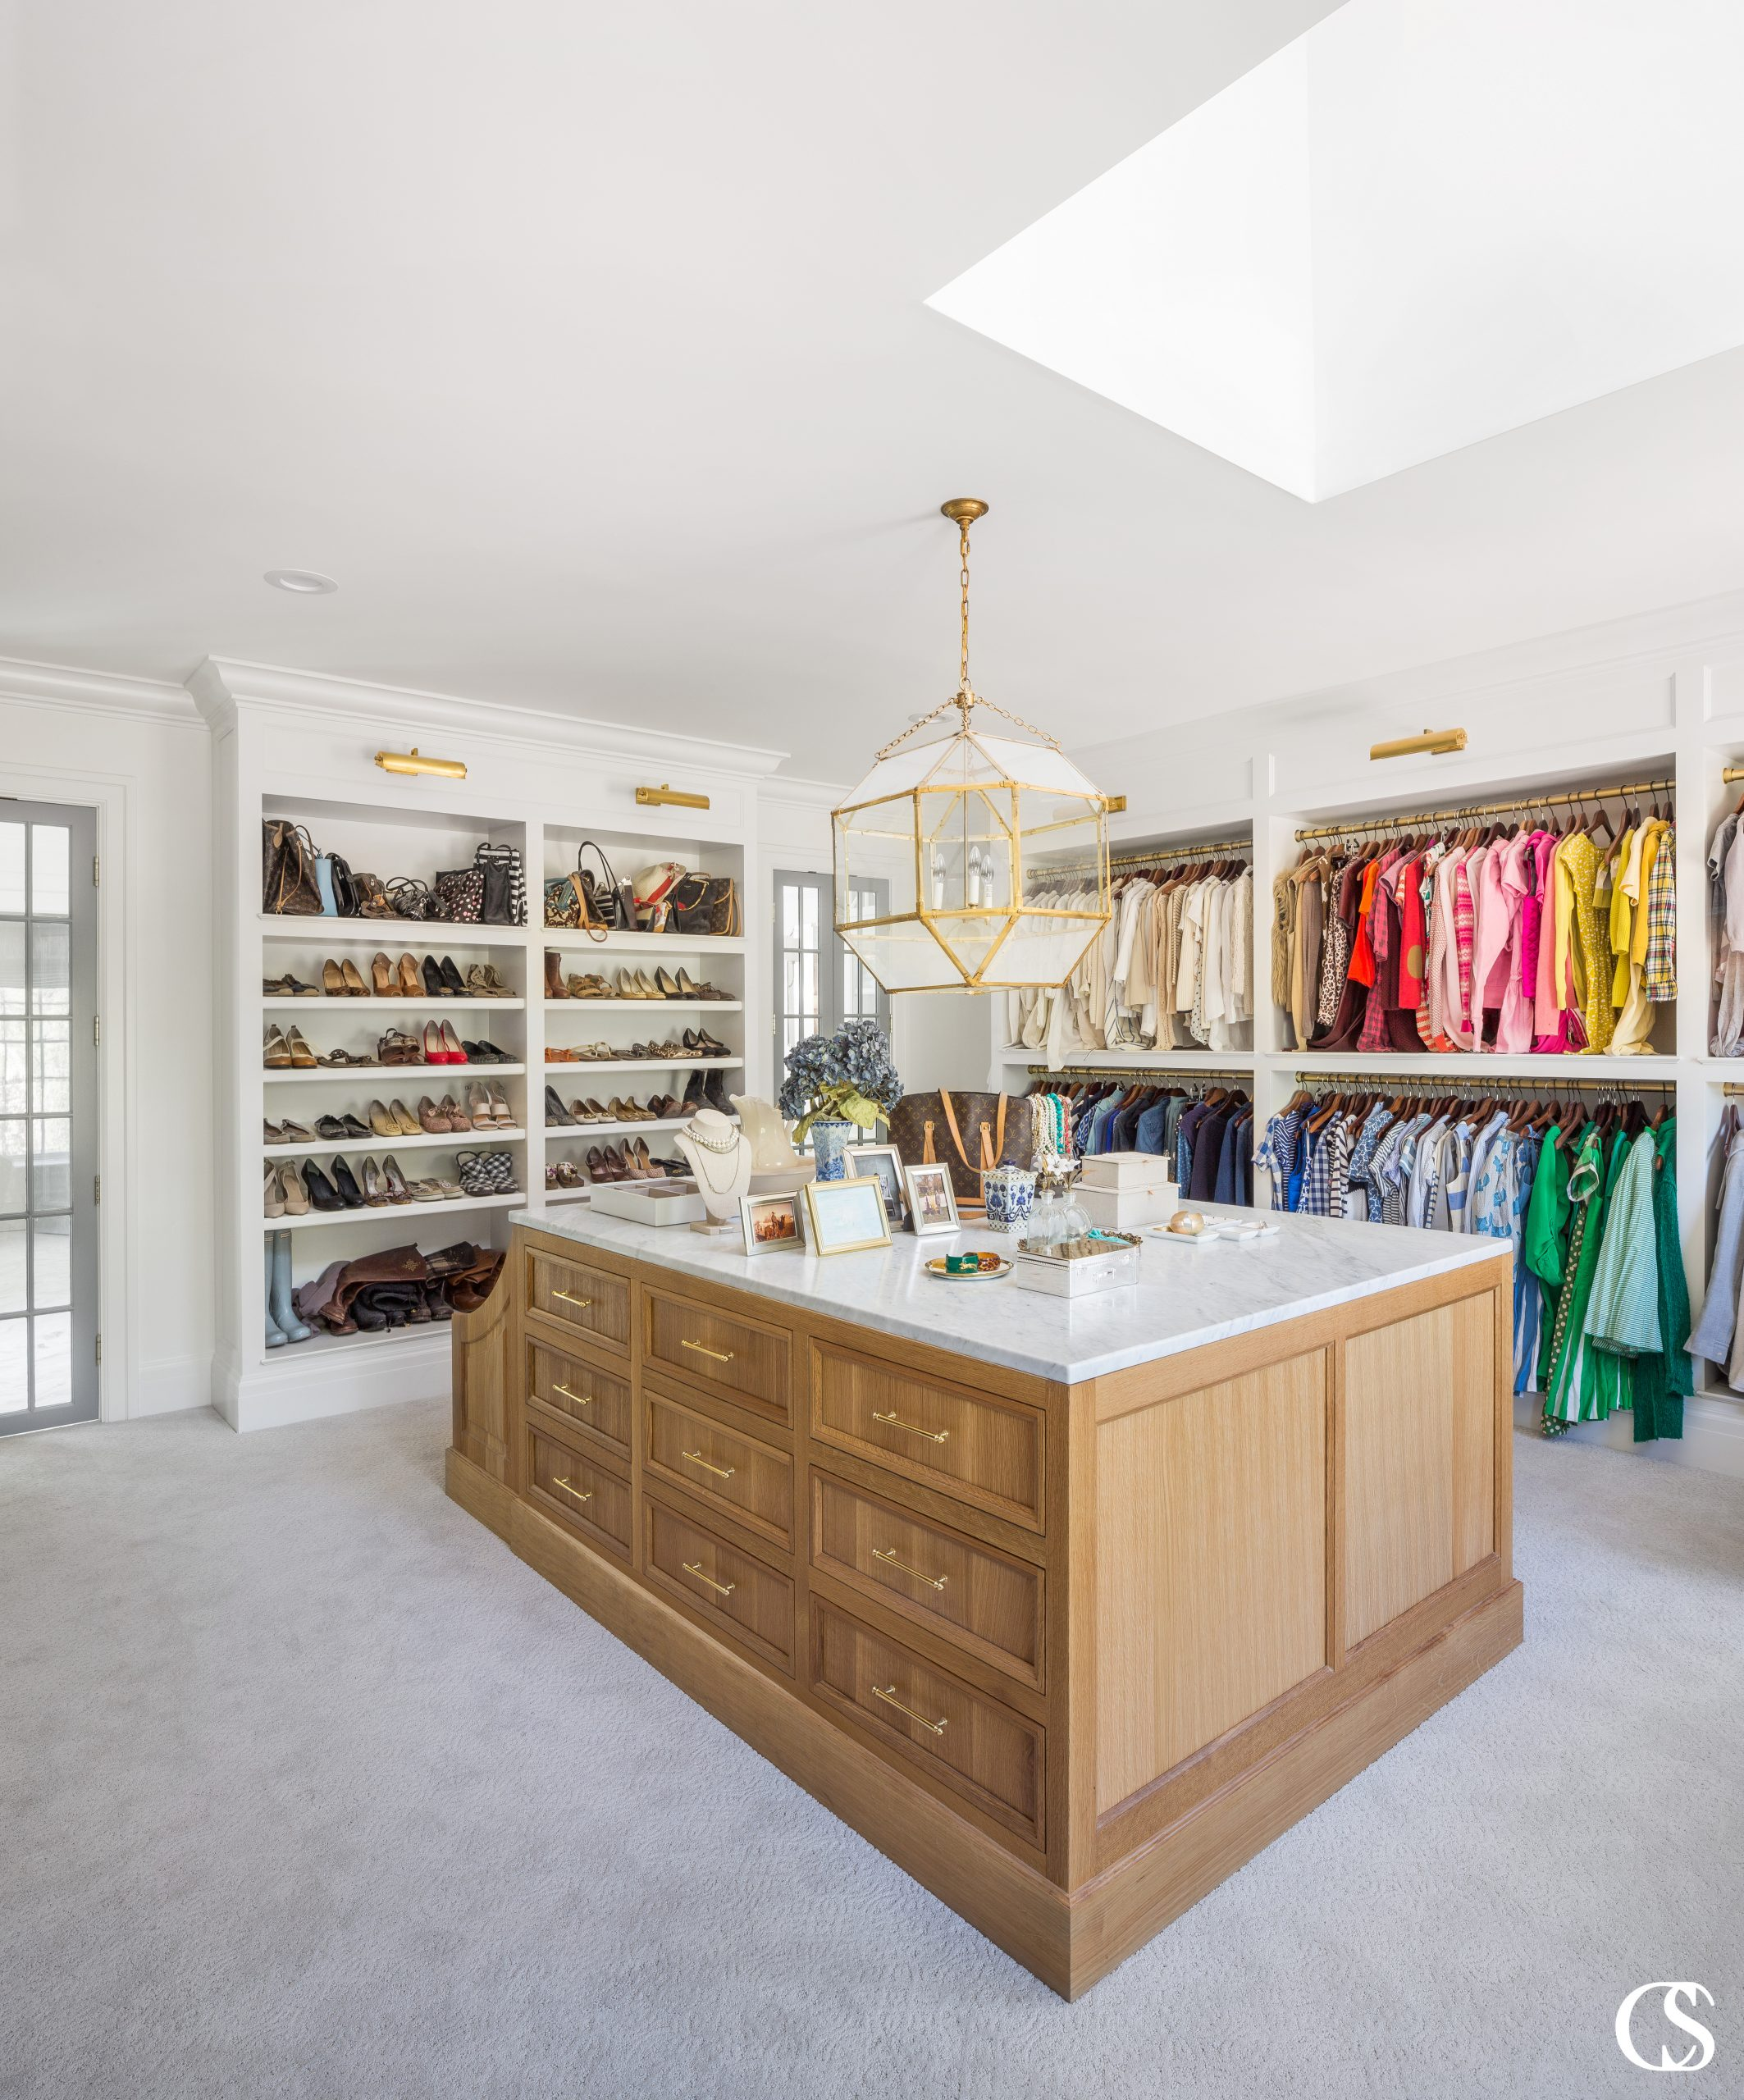 Don't forget the island full of drawers when coming up with built in closet ideas. You'll need space for delicates, jewelry, and even a comfy seat to put on shoes or just relax after a long day.